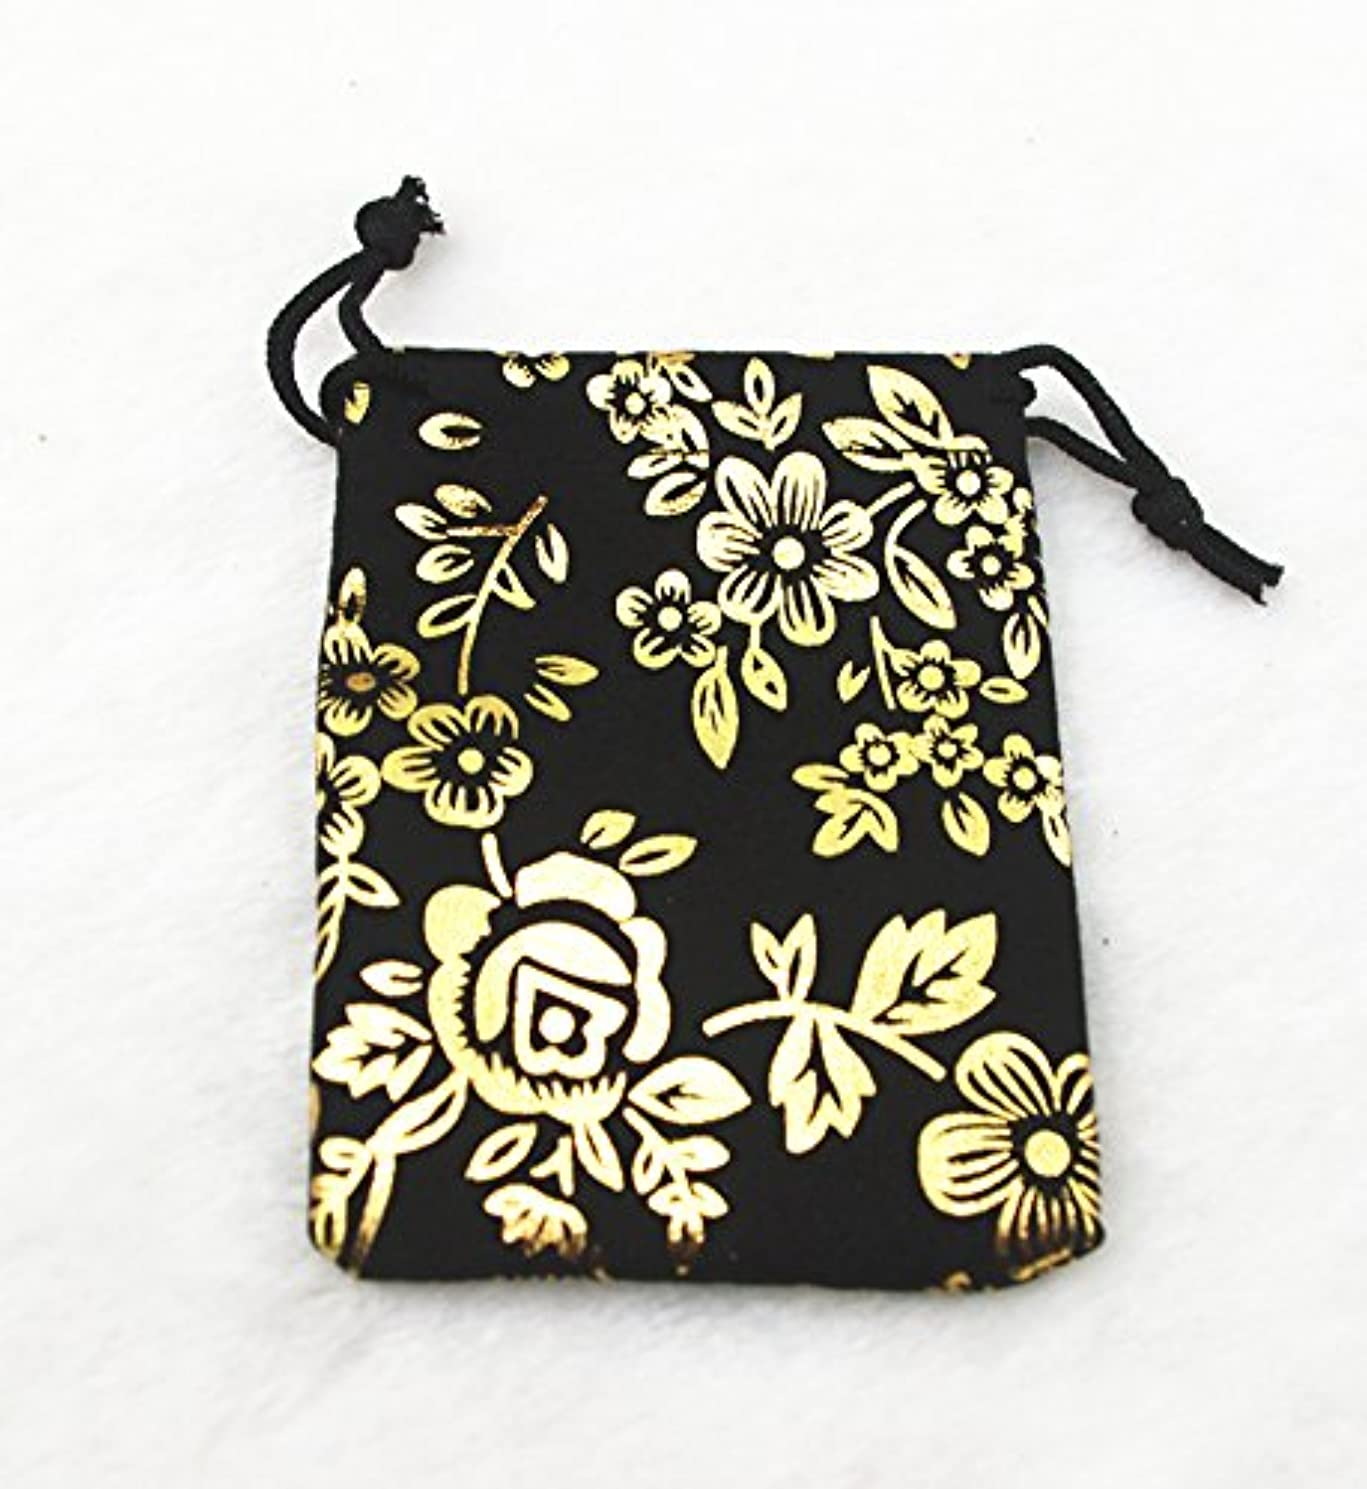 AEAOA Pack of 10 Velvet Gift Bags Drawstring Jewelry Pouches Candy Bags Wedding Favors (4x6 inches, Gold Flower)